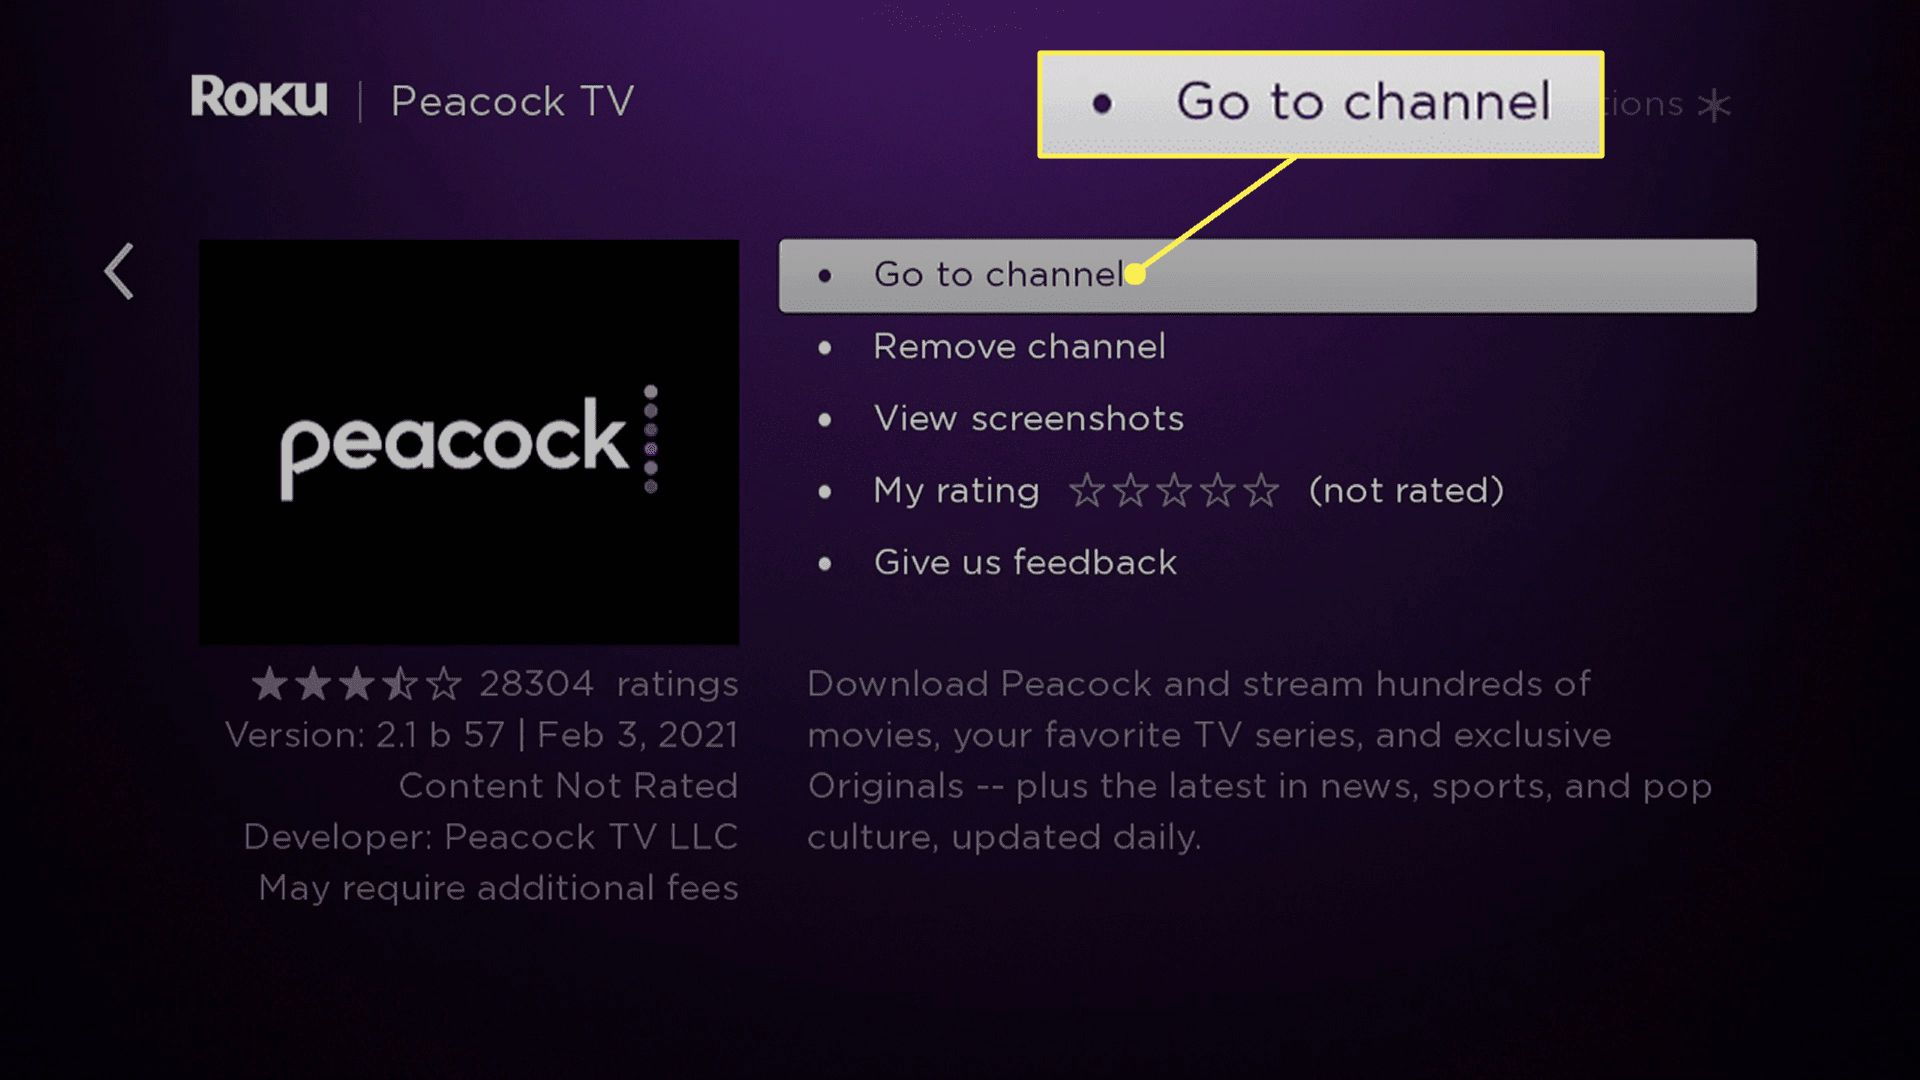 Go to channel highlighted on Peacock TV on Roku.